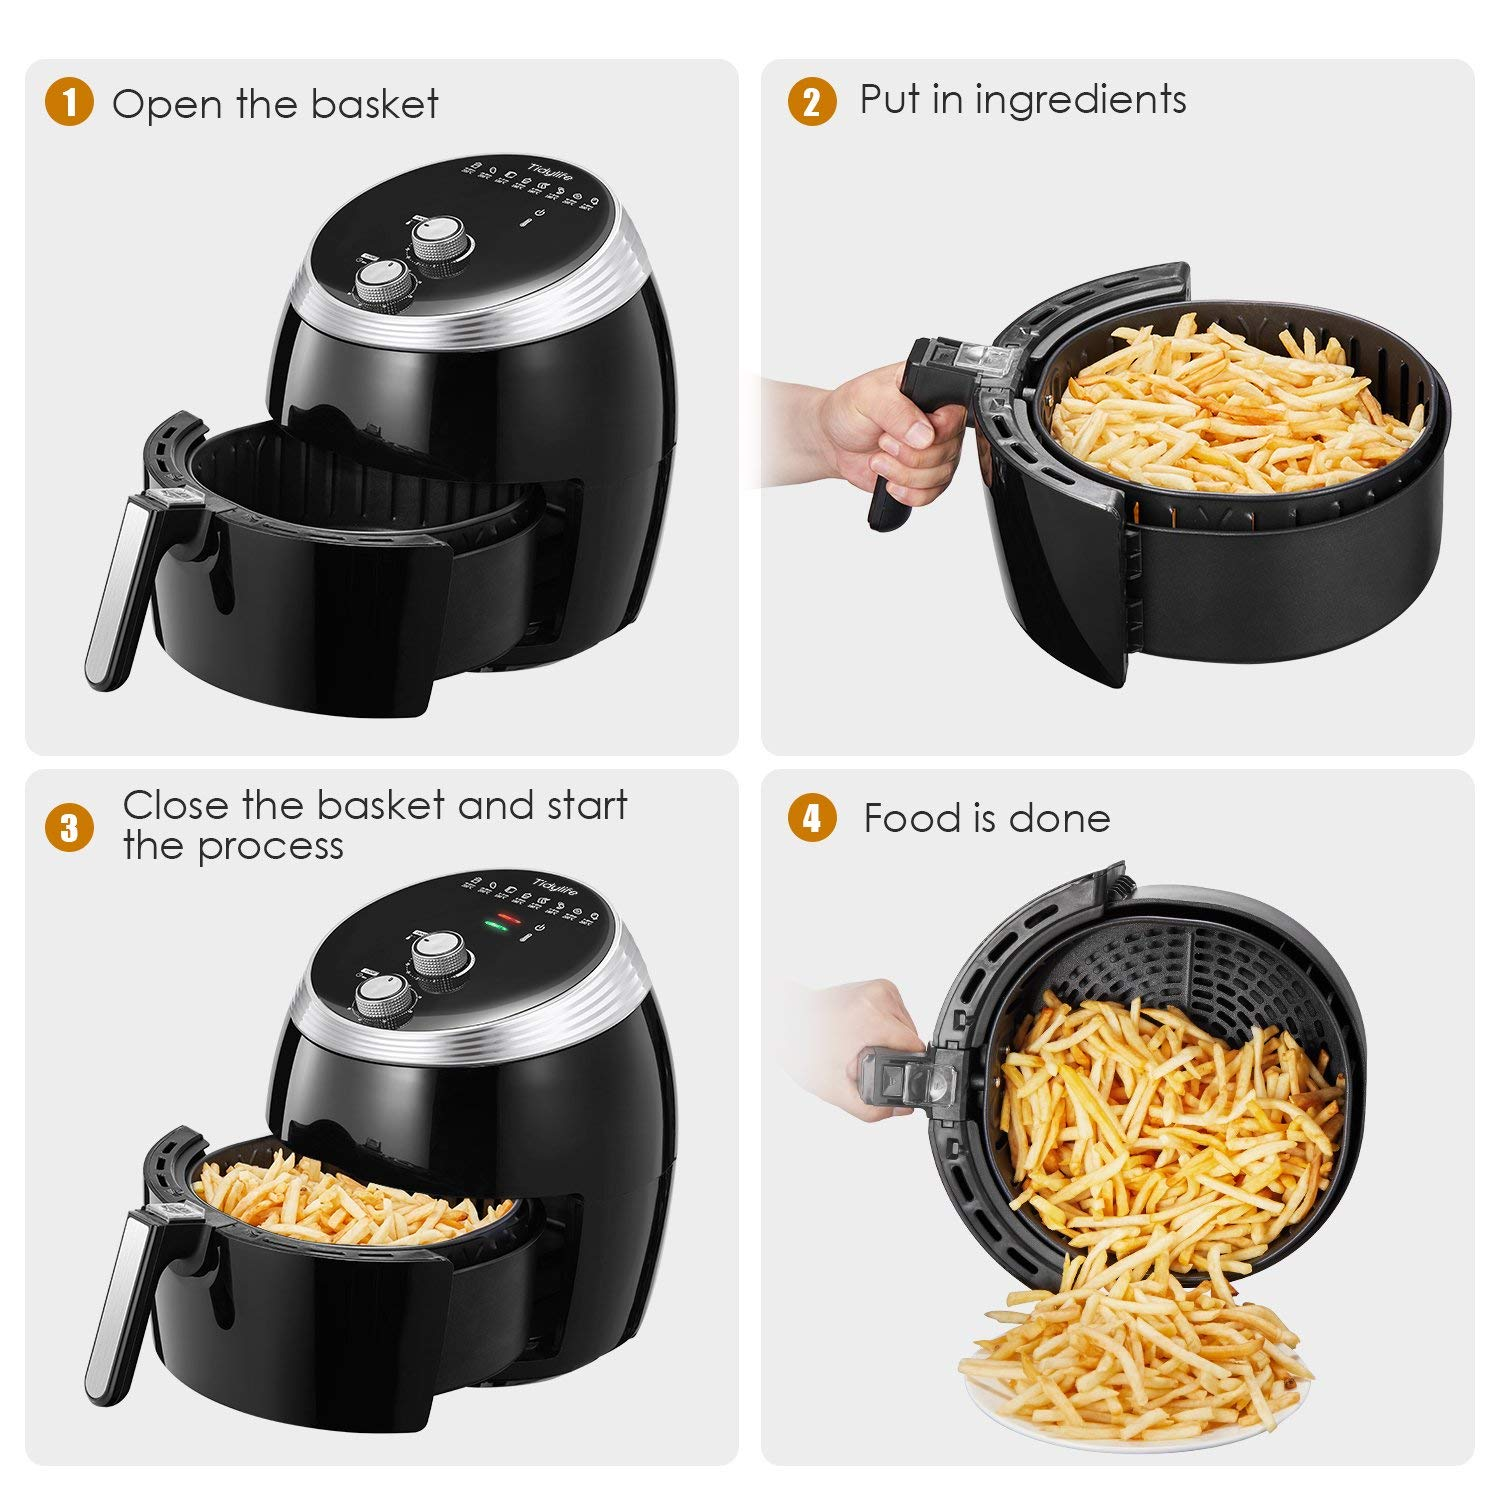 Air Fryer, Tidylife 6.3QT Large Air Fryer, 1700W Oilless XL Oven Cooker, Smart Time and Temperature Control, 7 Cooking Preset, 180-400℉Hot Air Fryer with Non-stick Basket, Auto Shut Off, 50+ Recipes by Tidylife (Image #5)